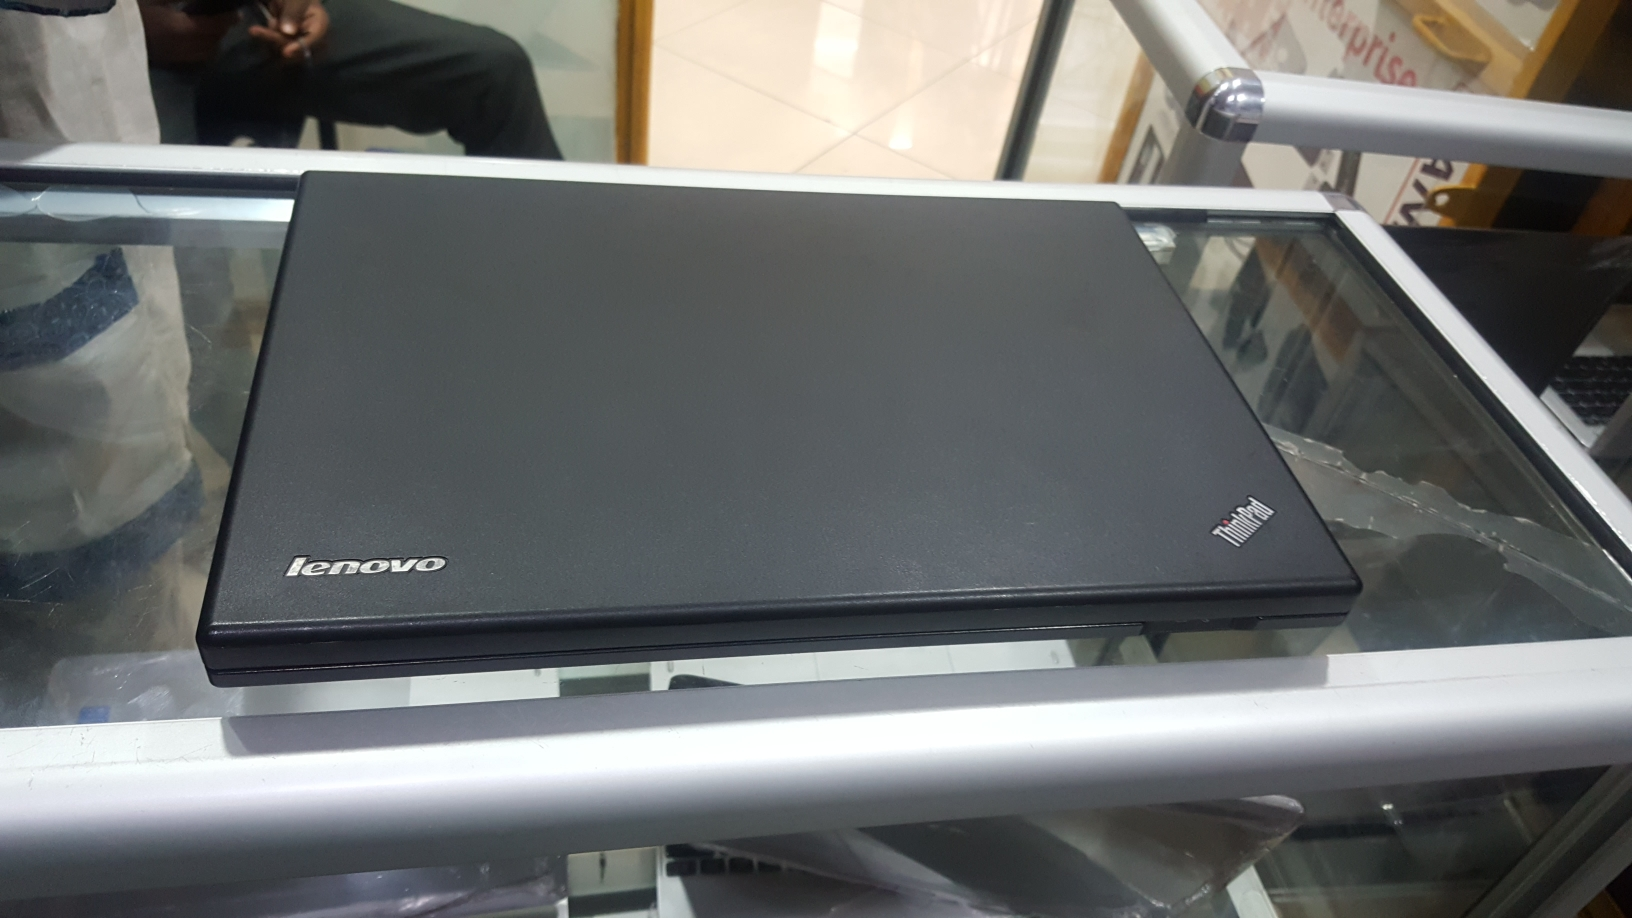 Lenovo T430 core i5 hdd 500gb ram 4gb prcs 2 50ghz dvd cam wifi